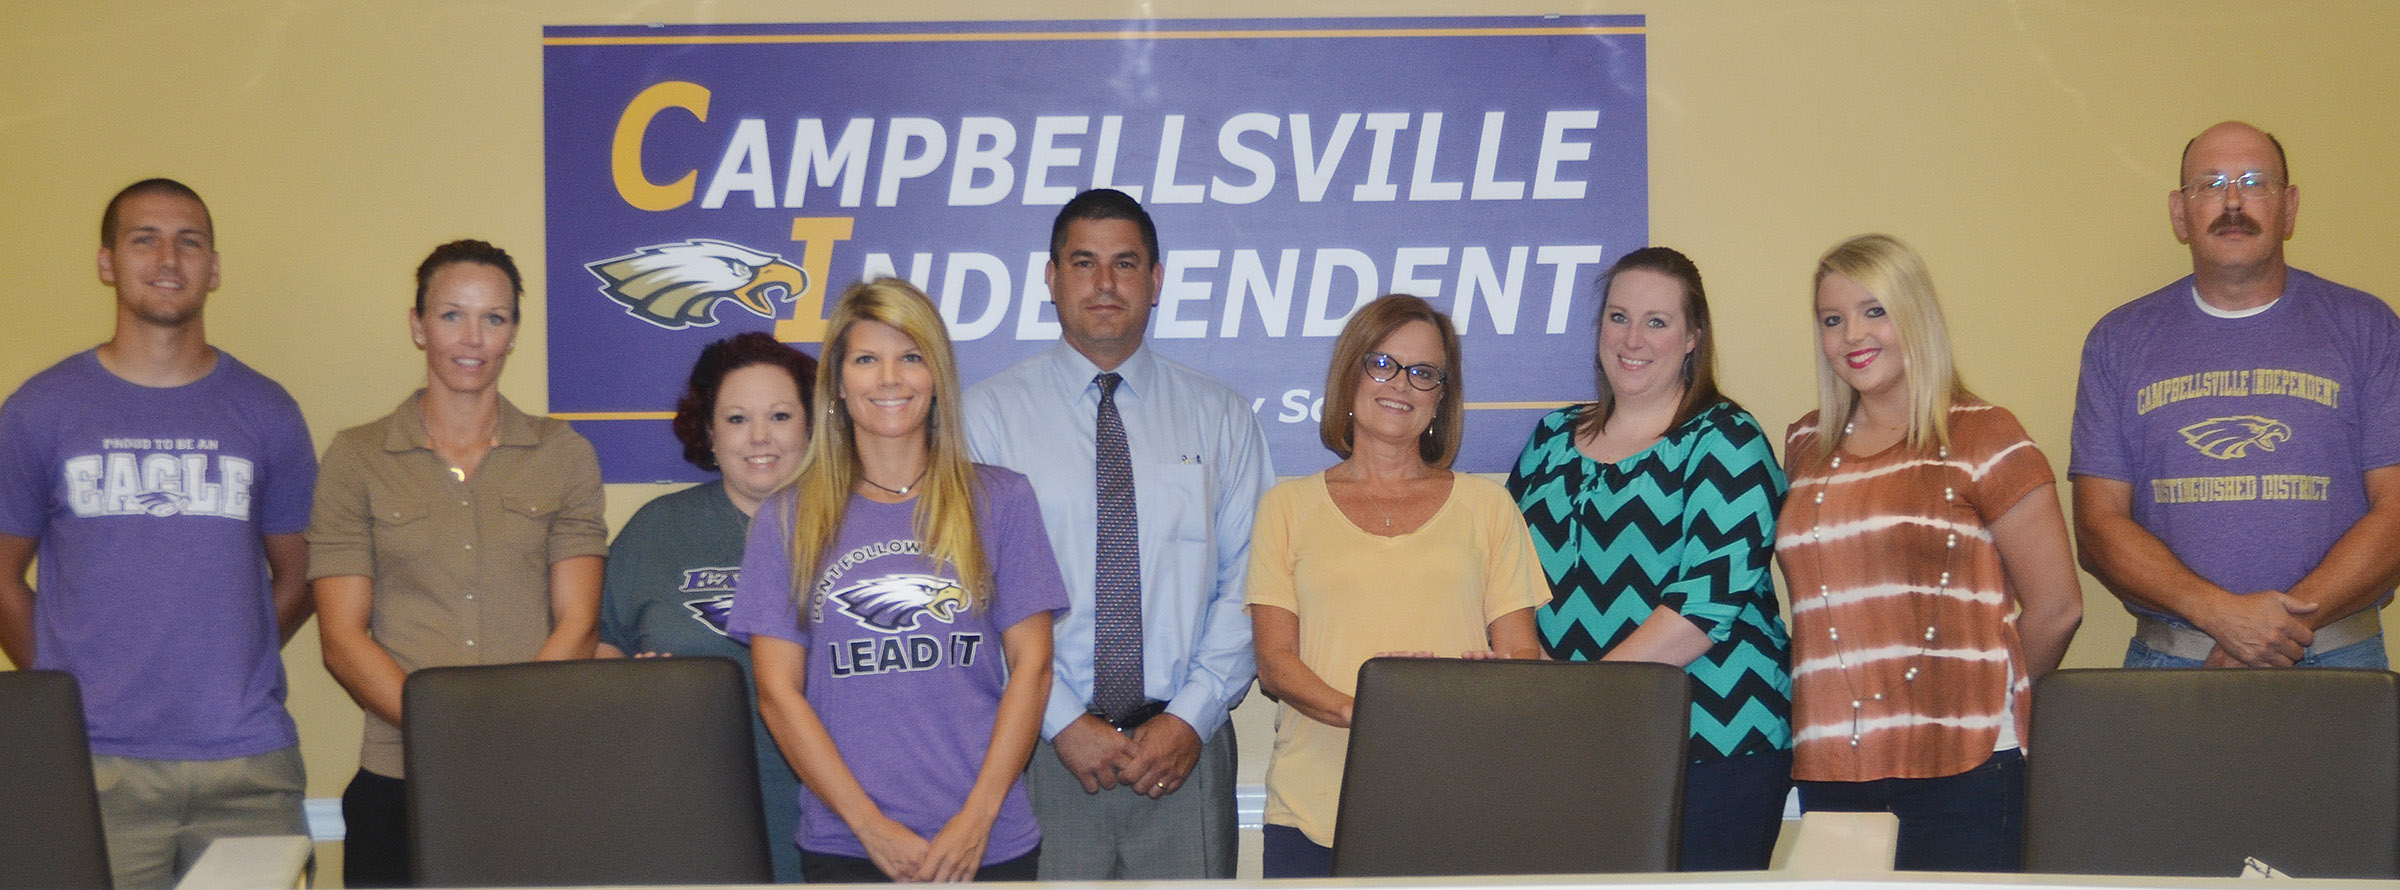 Campbellsville Independent Schools has hired several new teachers and staff members to help make the new school year a success. New employees attending orientation on Thursday, Aug. 3, are, from left, Zach Durham, CES instructional assistant; Tasha Phillips Goff, CHS instructional assistant; B.J. Perkins, bus monitor/cafeteria worker/custodial worker; Andrea Gribbins, CMS teacher; Kirby Smith, superintendent; CHS teacher Mary Jo Hazel; CES preschool teacher Julie Shelton; CES teacher Keri Rowe; and custodian James Cheuvront. Absent from the photo is custodian Thomas Phillips.